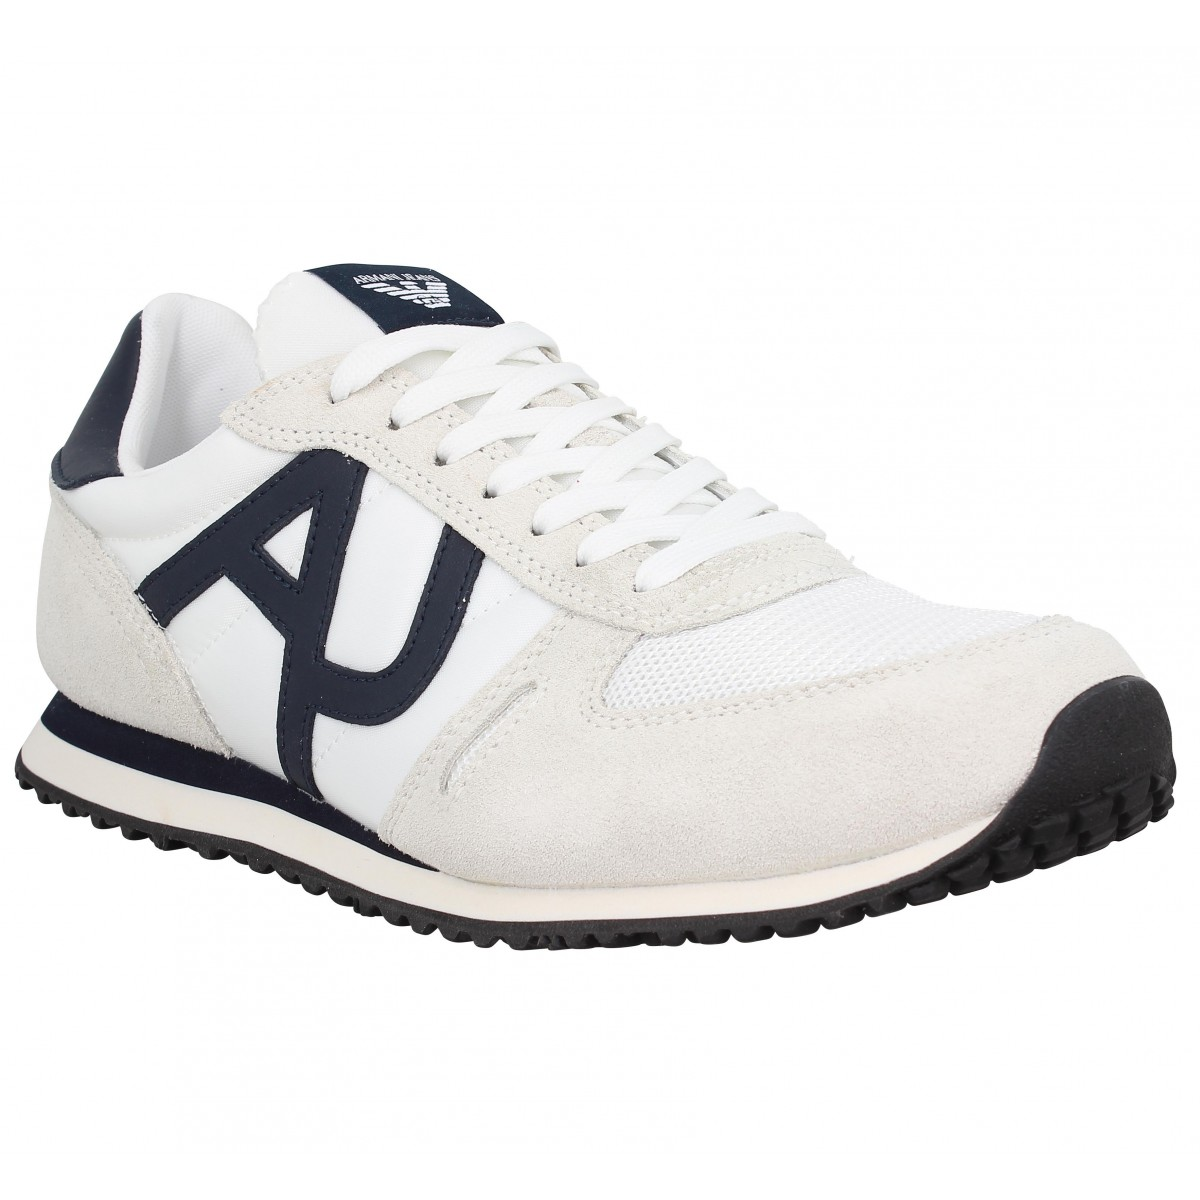 721ad6803167e7 Chaussures Armani jeans 9350 homme blanc homme | Fanny chaussures